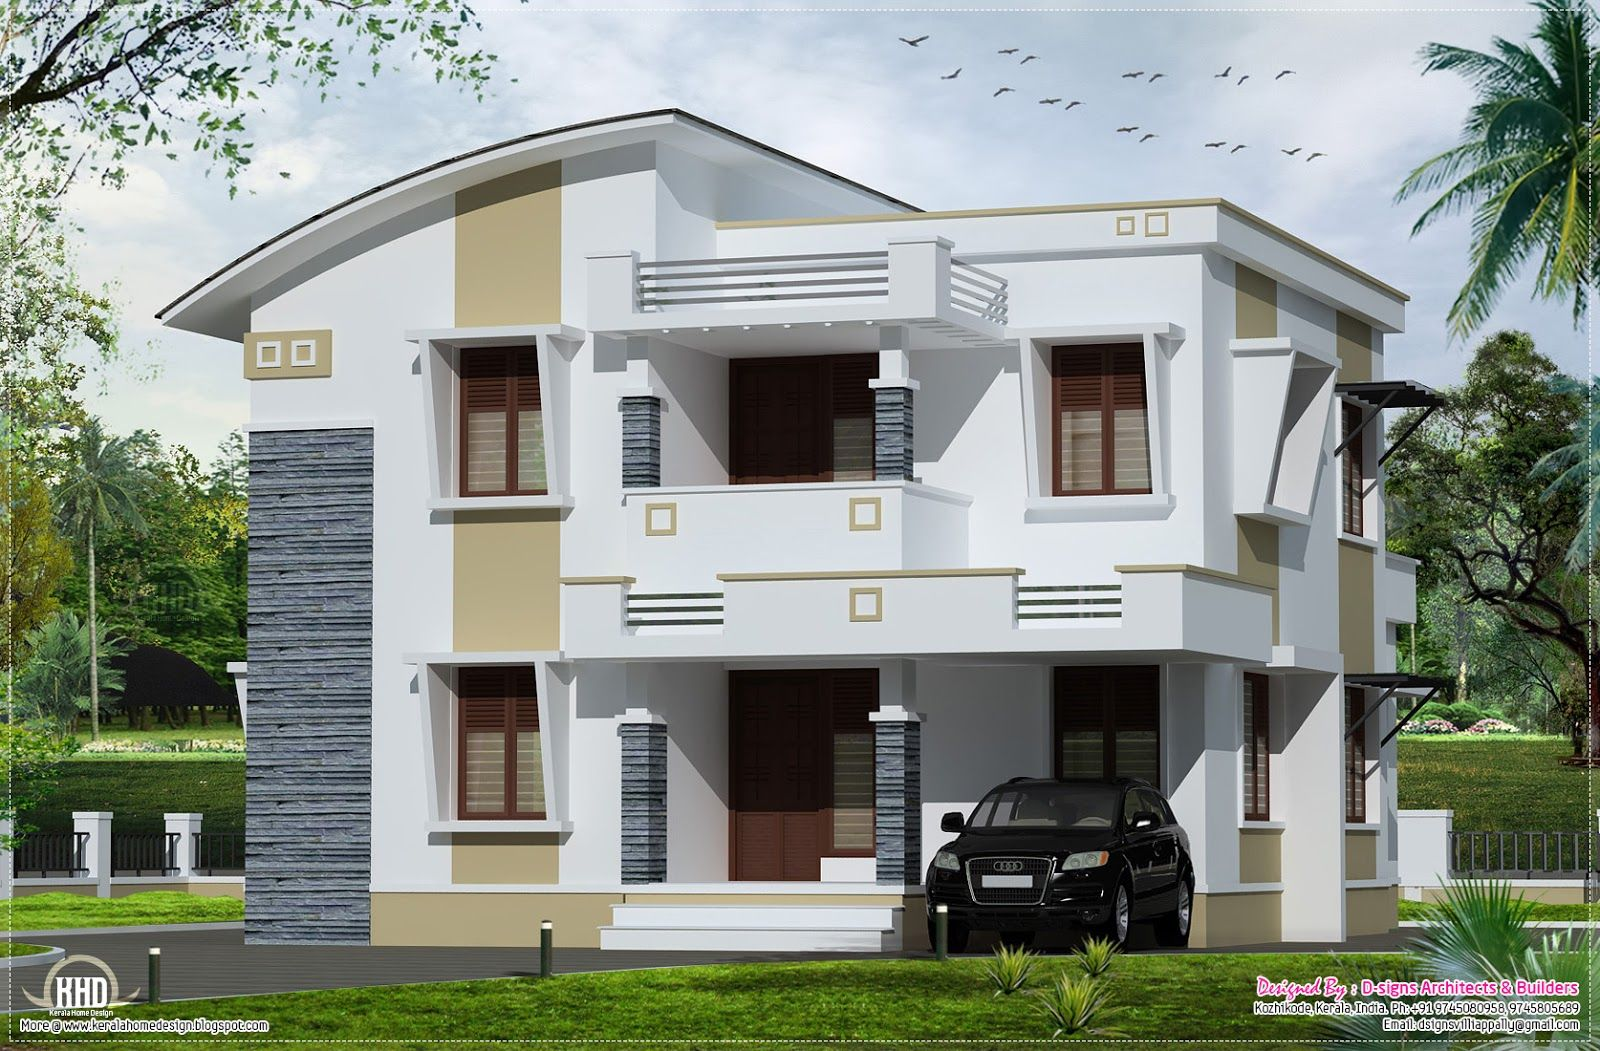 Architecture Design Kerala Model flat roof home design sq feet kerala home design roof design plans